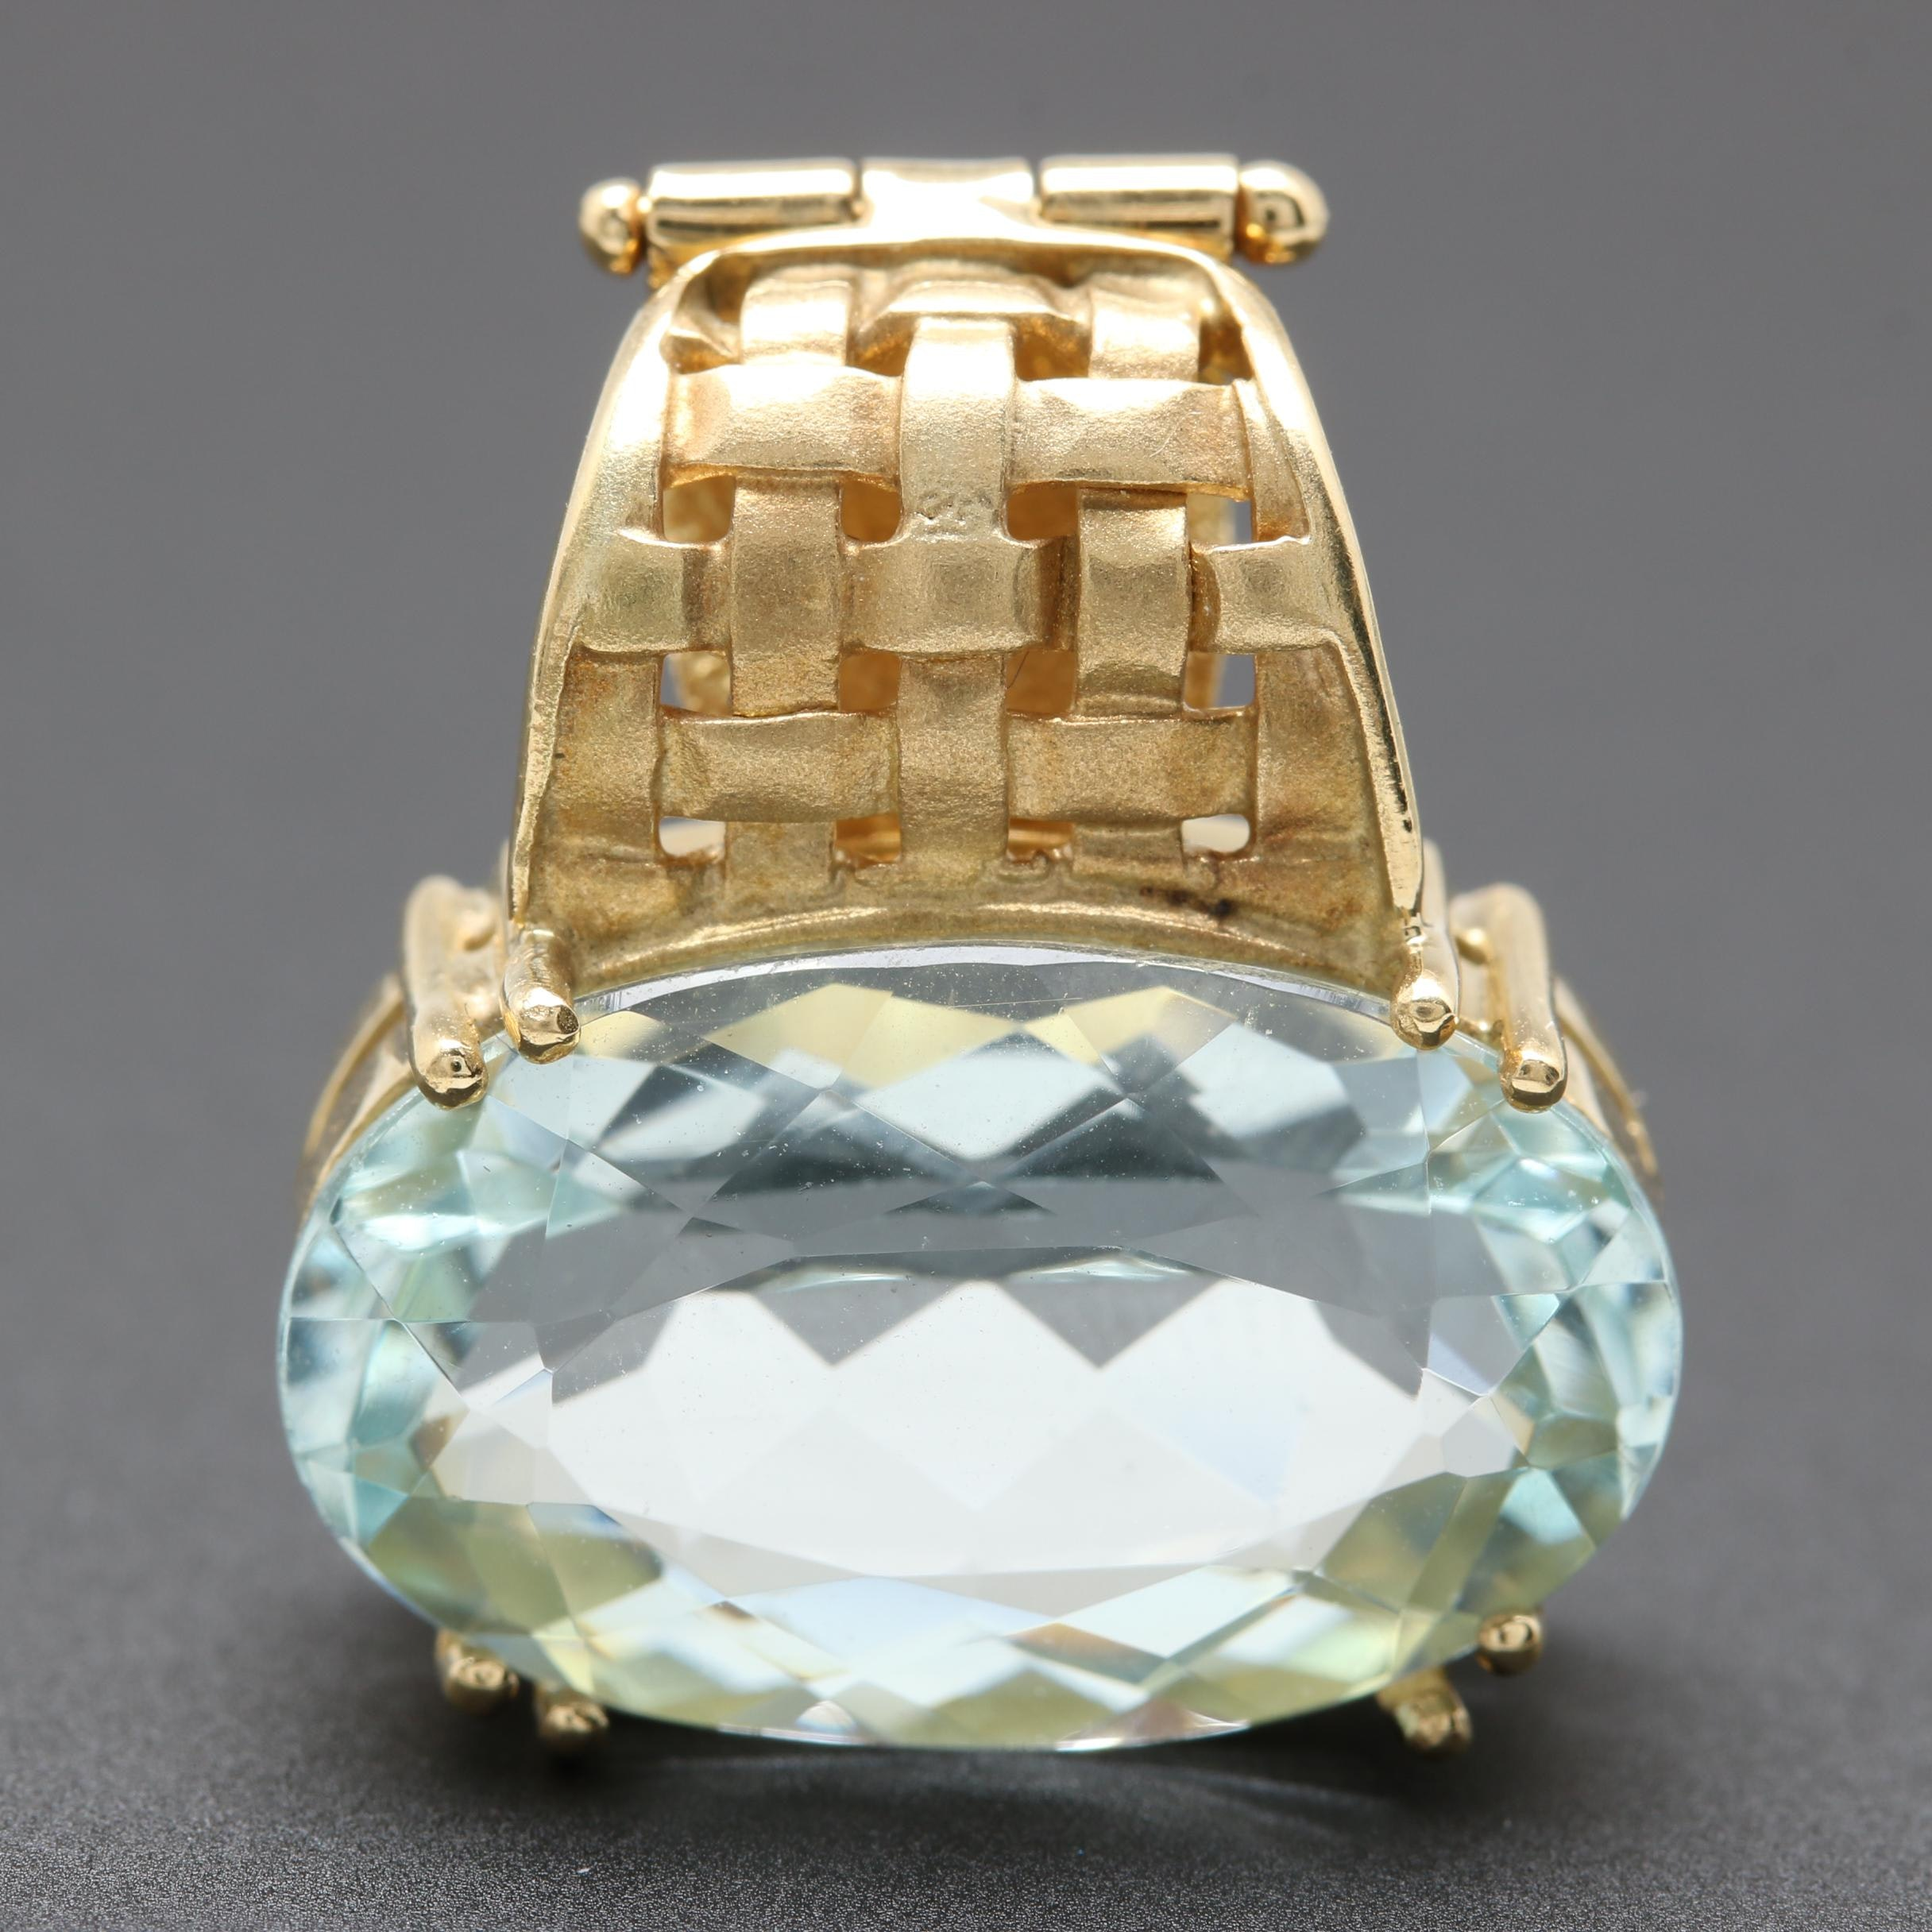 18K Yellow Gold 7.47 CT Aquamarine Enhancer Pendant